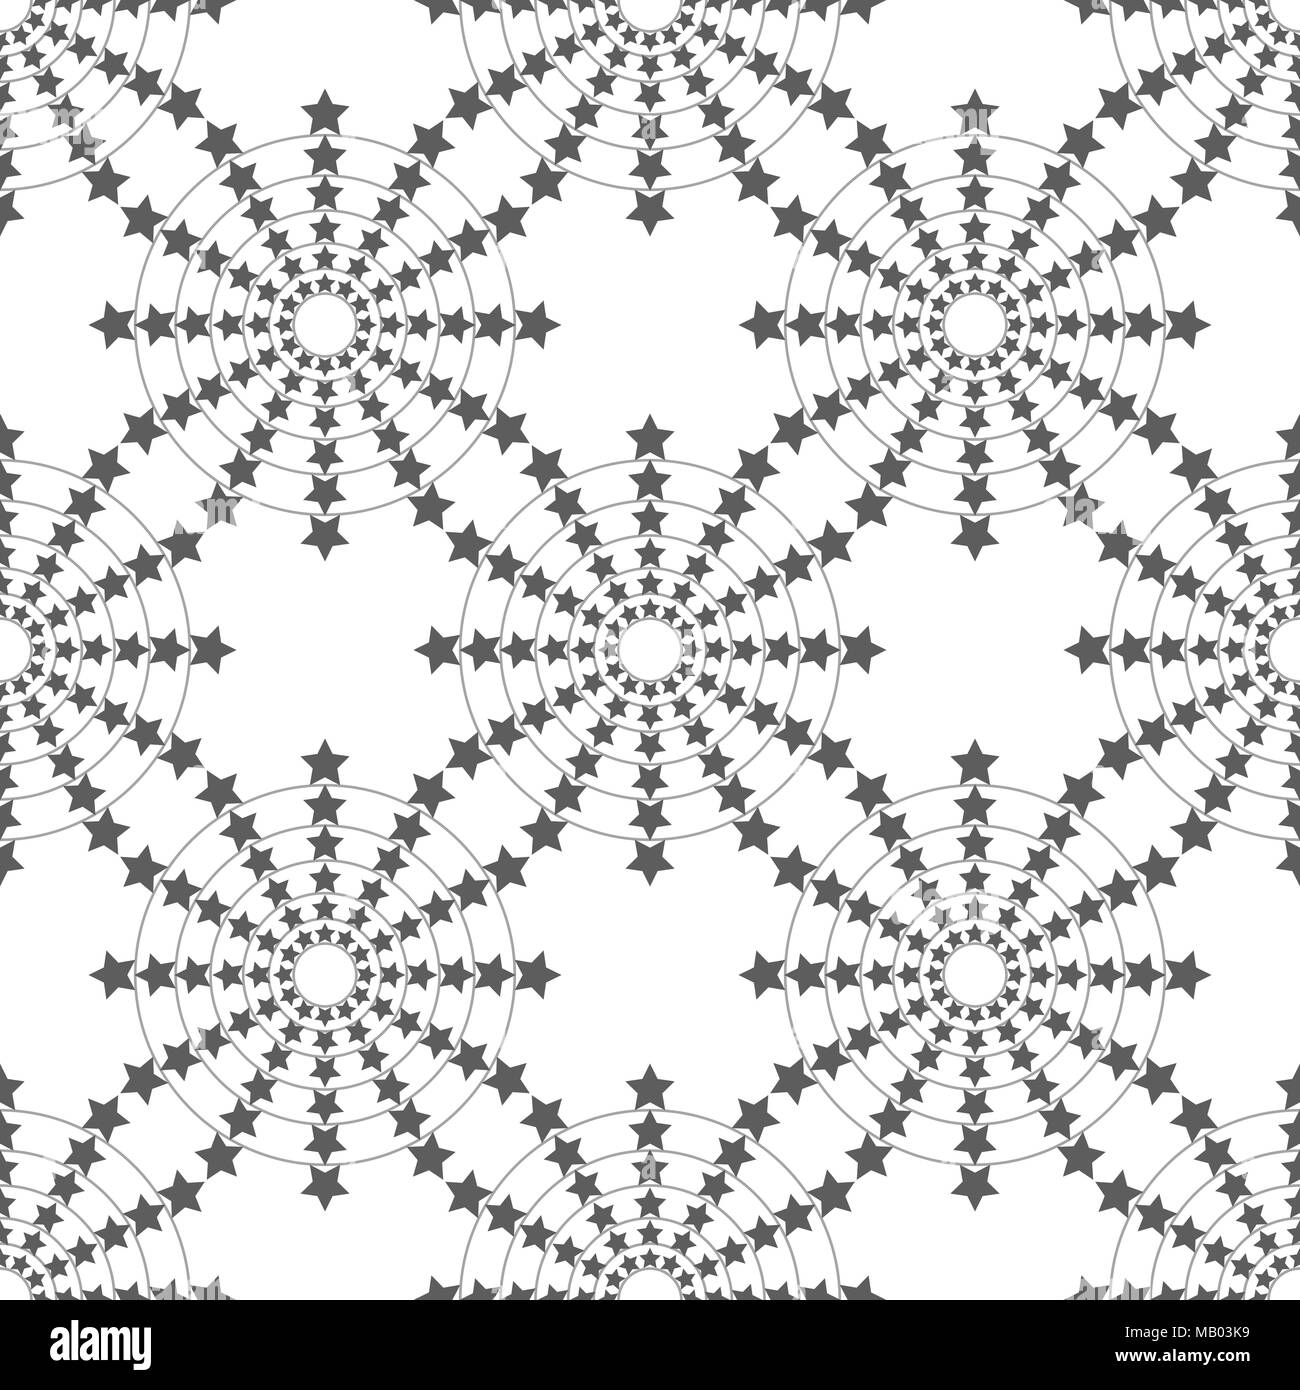 Seamless Circle Pattern. Vector Sparklers Background. Star Christmas Ornament. Simple Circular Blot Graphic Design eps - Stock Image